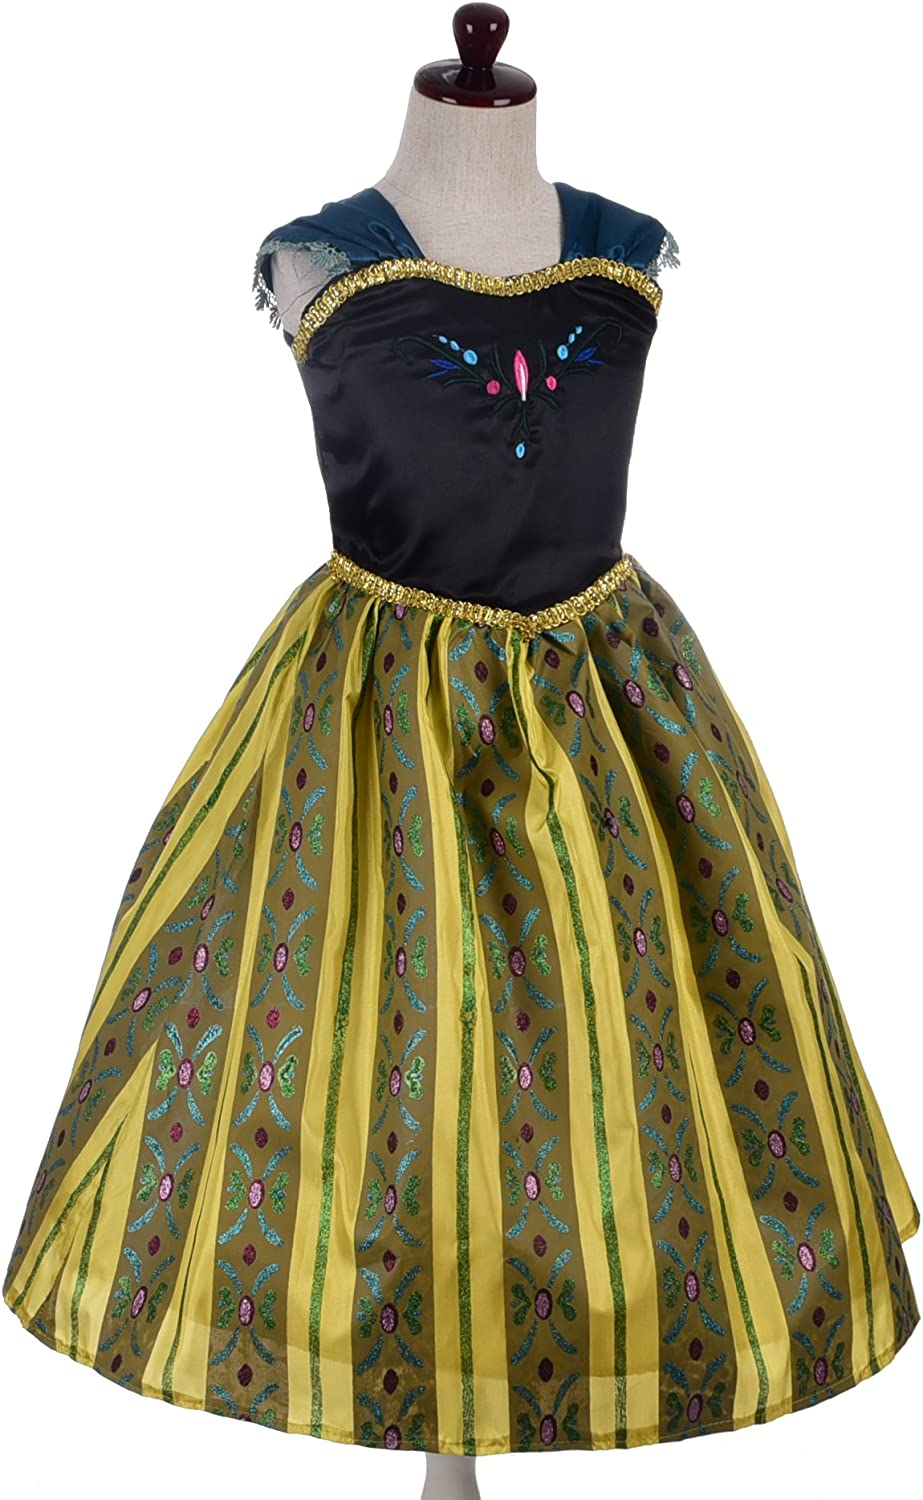 Dressy Daisy Girls Ice Princess Sister Coronation Gown Birthday Halloween Christmas Fancy Party Costume Size 2-12